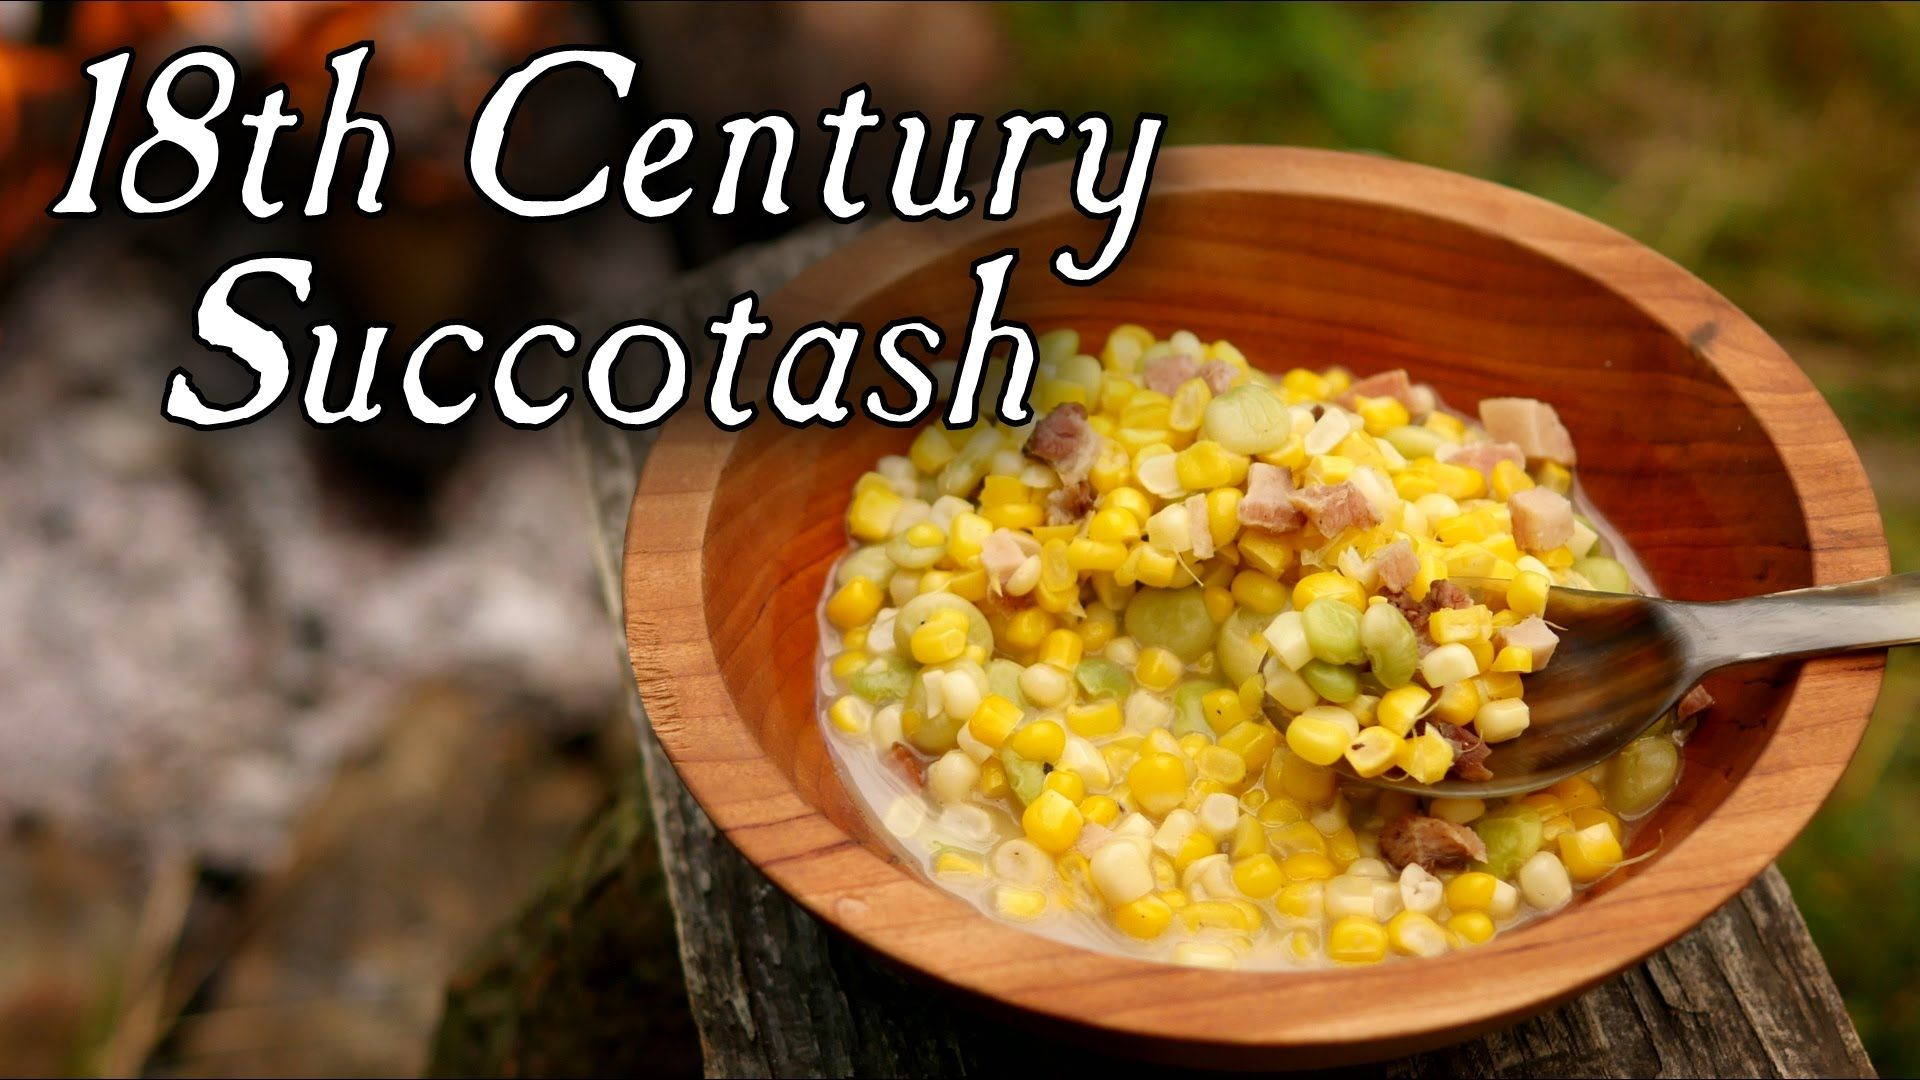 A Centuries-Old Succotash Recipe! -for veg, omit meat.